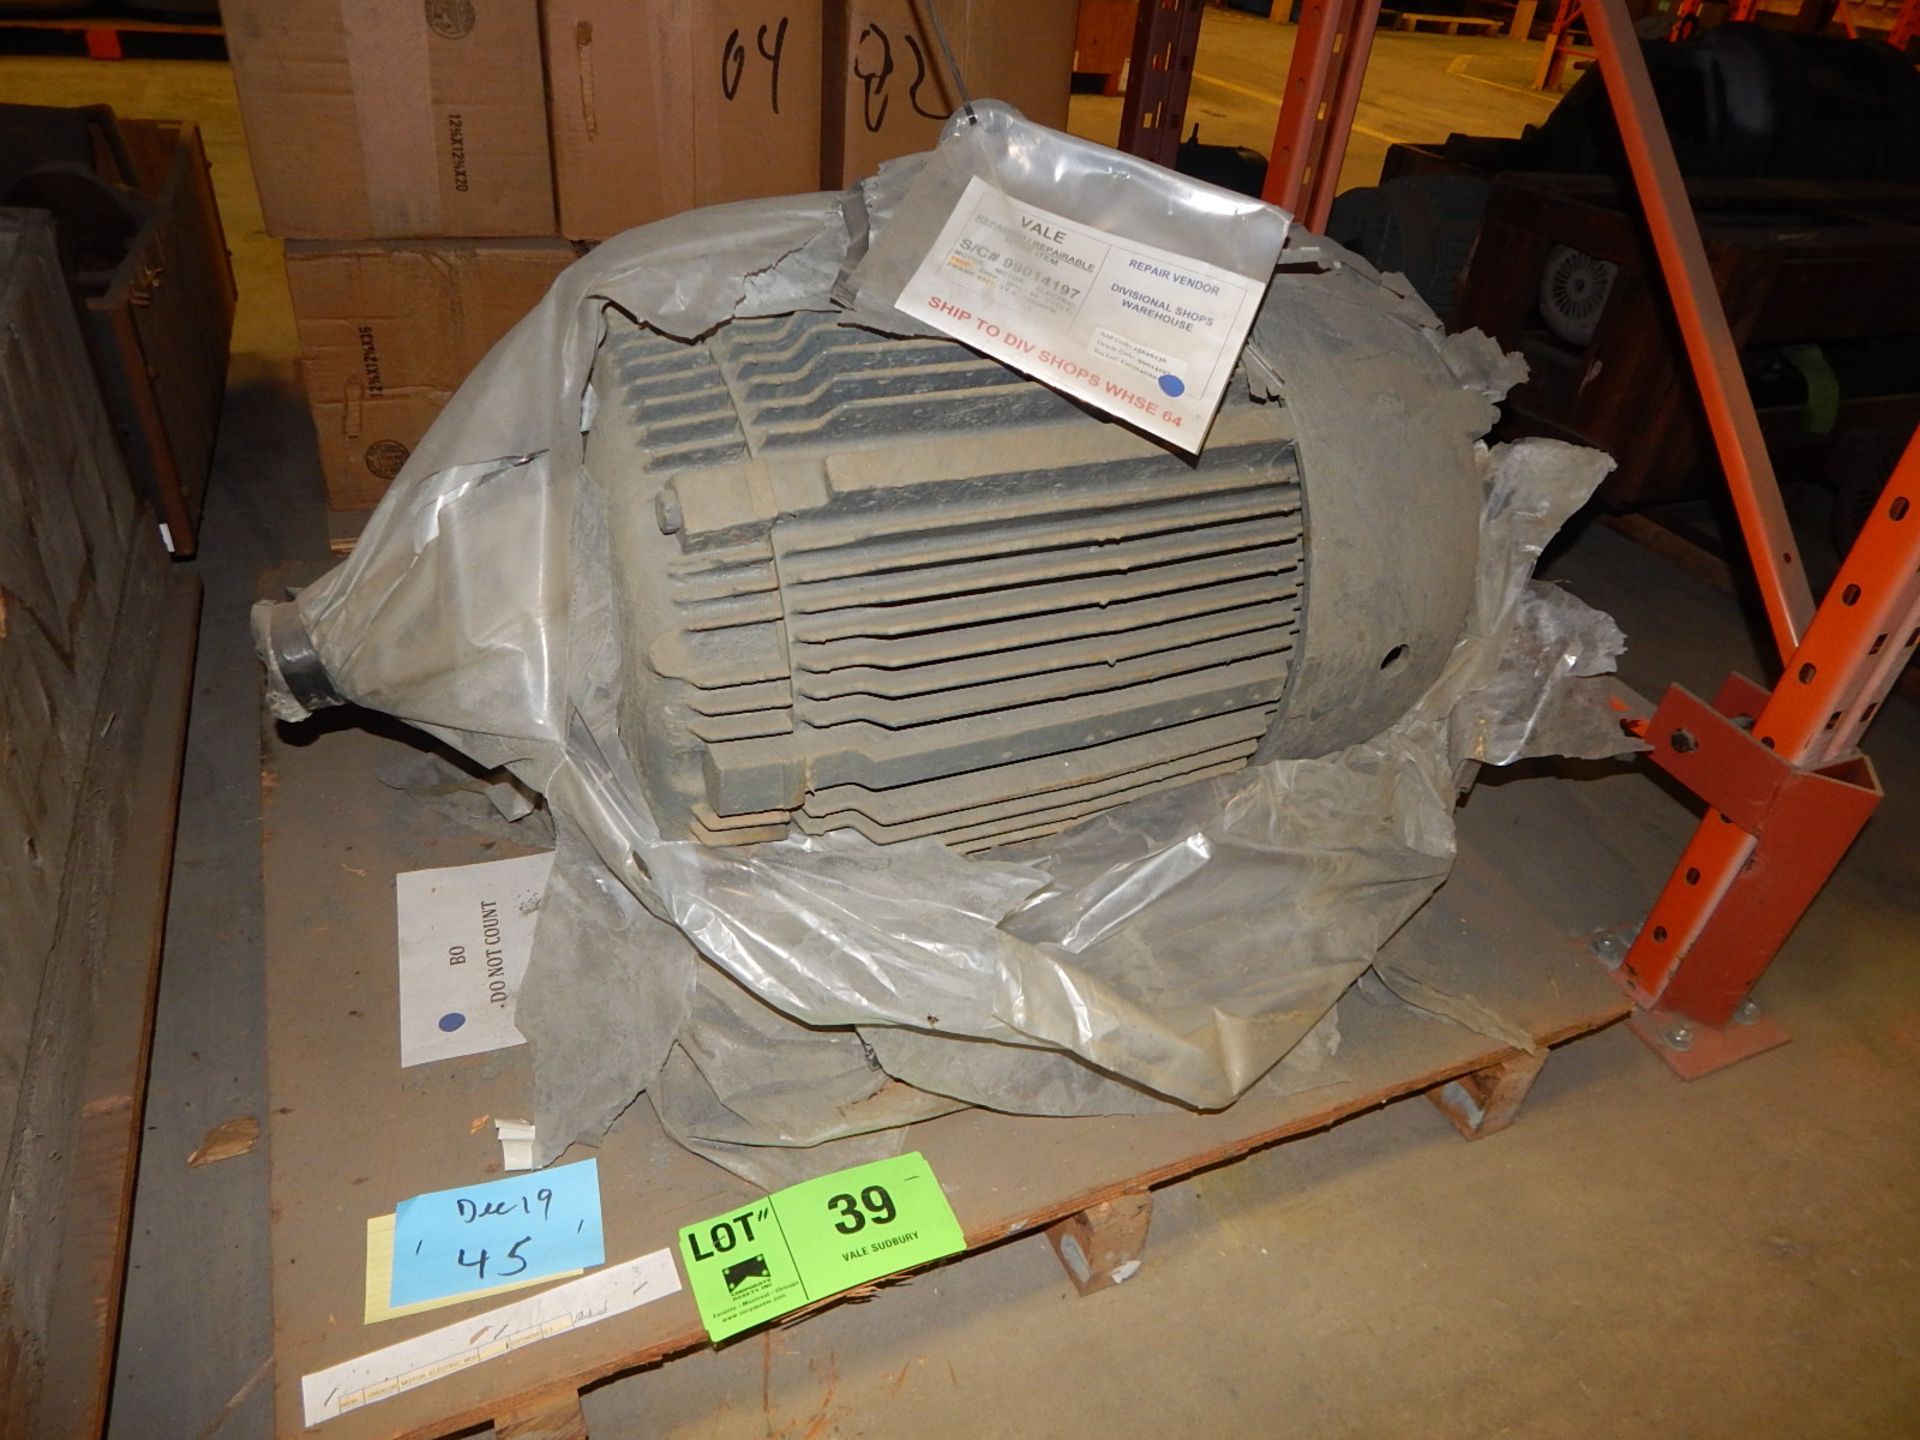 Lot 39 - 75 HP/12OORPM/ 550V/ 3PH ELECTRIC MOTOR (CMD)